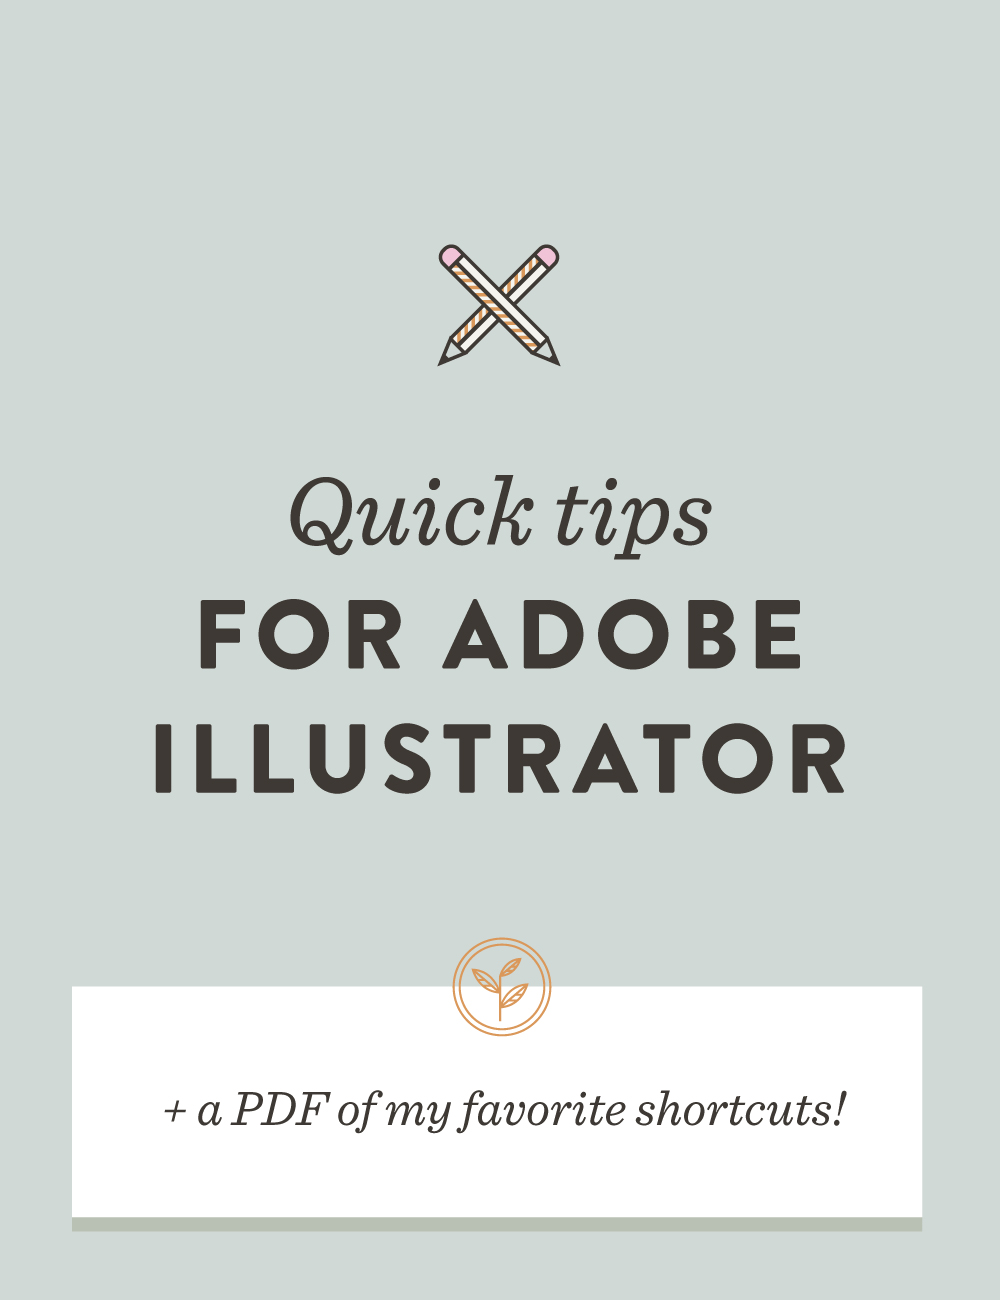 Quick tips for Adobe Illustrator (+ a PDF of my favorite